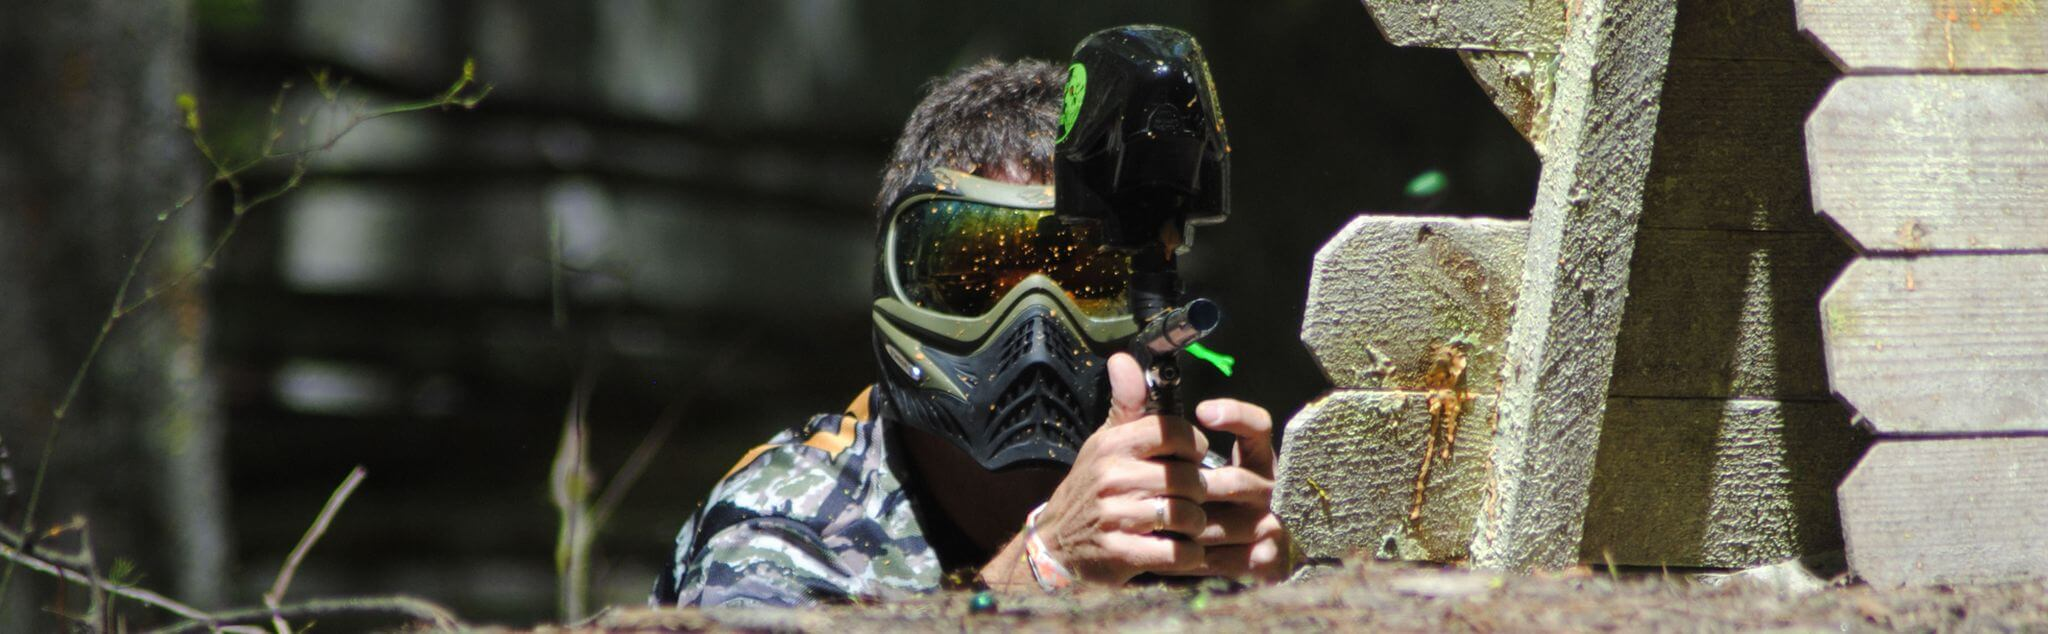 Paintball a Perugia (Città)